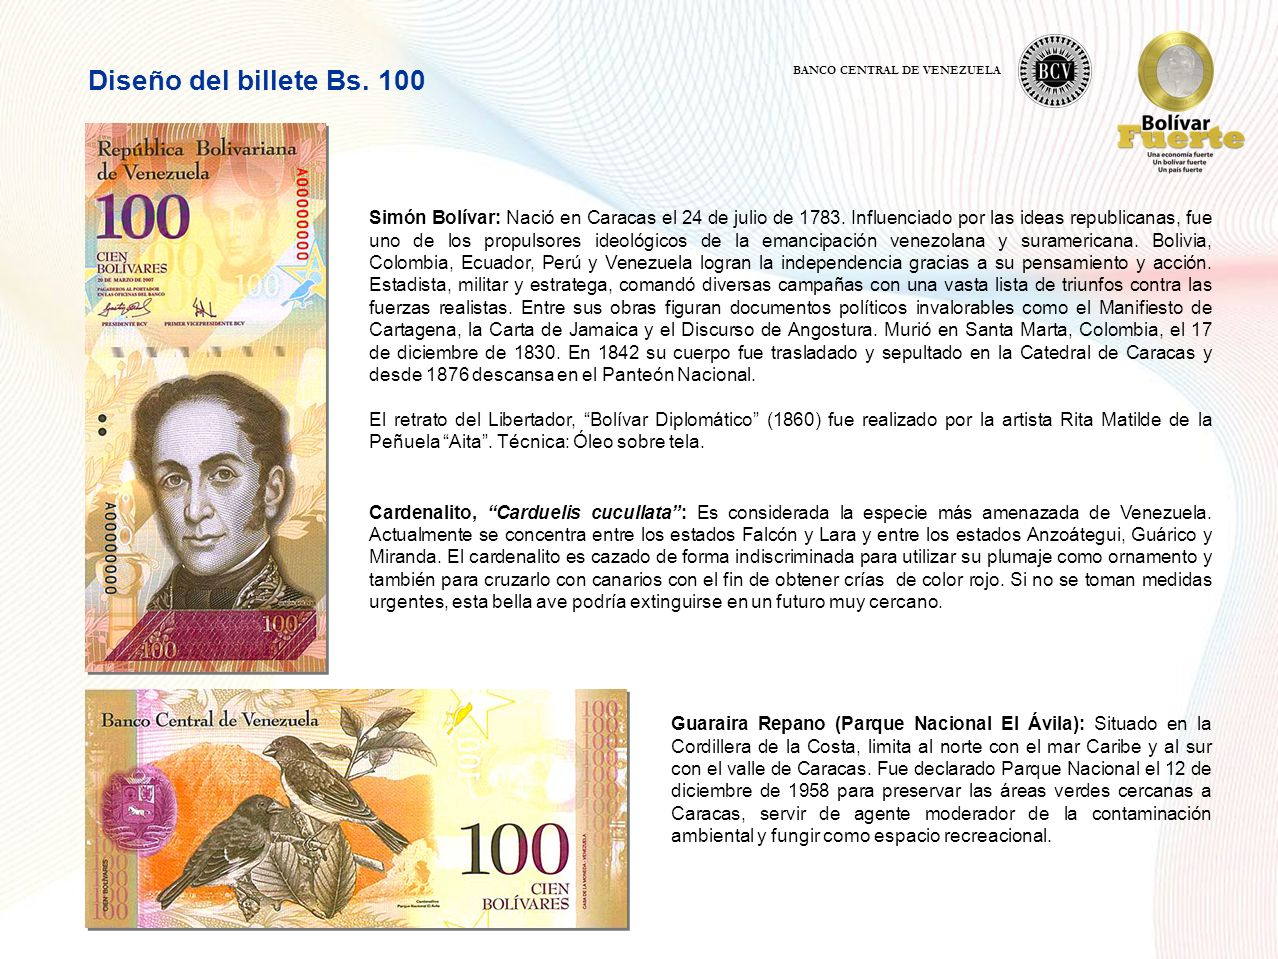 Diseño del billete Bs. 100 BANCO CENTRAL DE VENEZUELA.